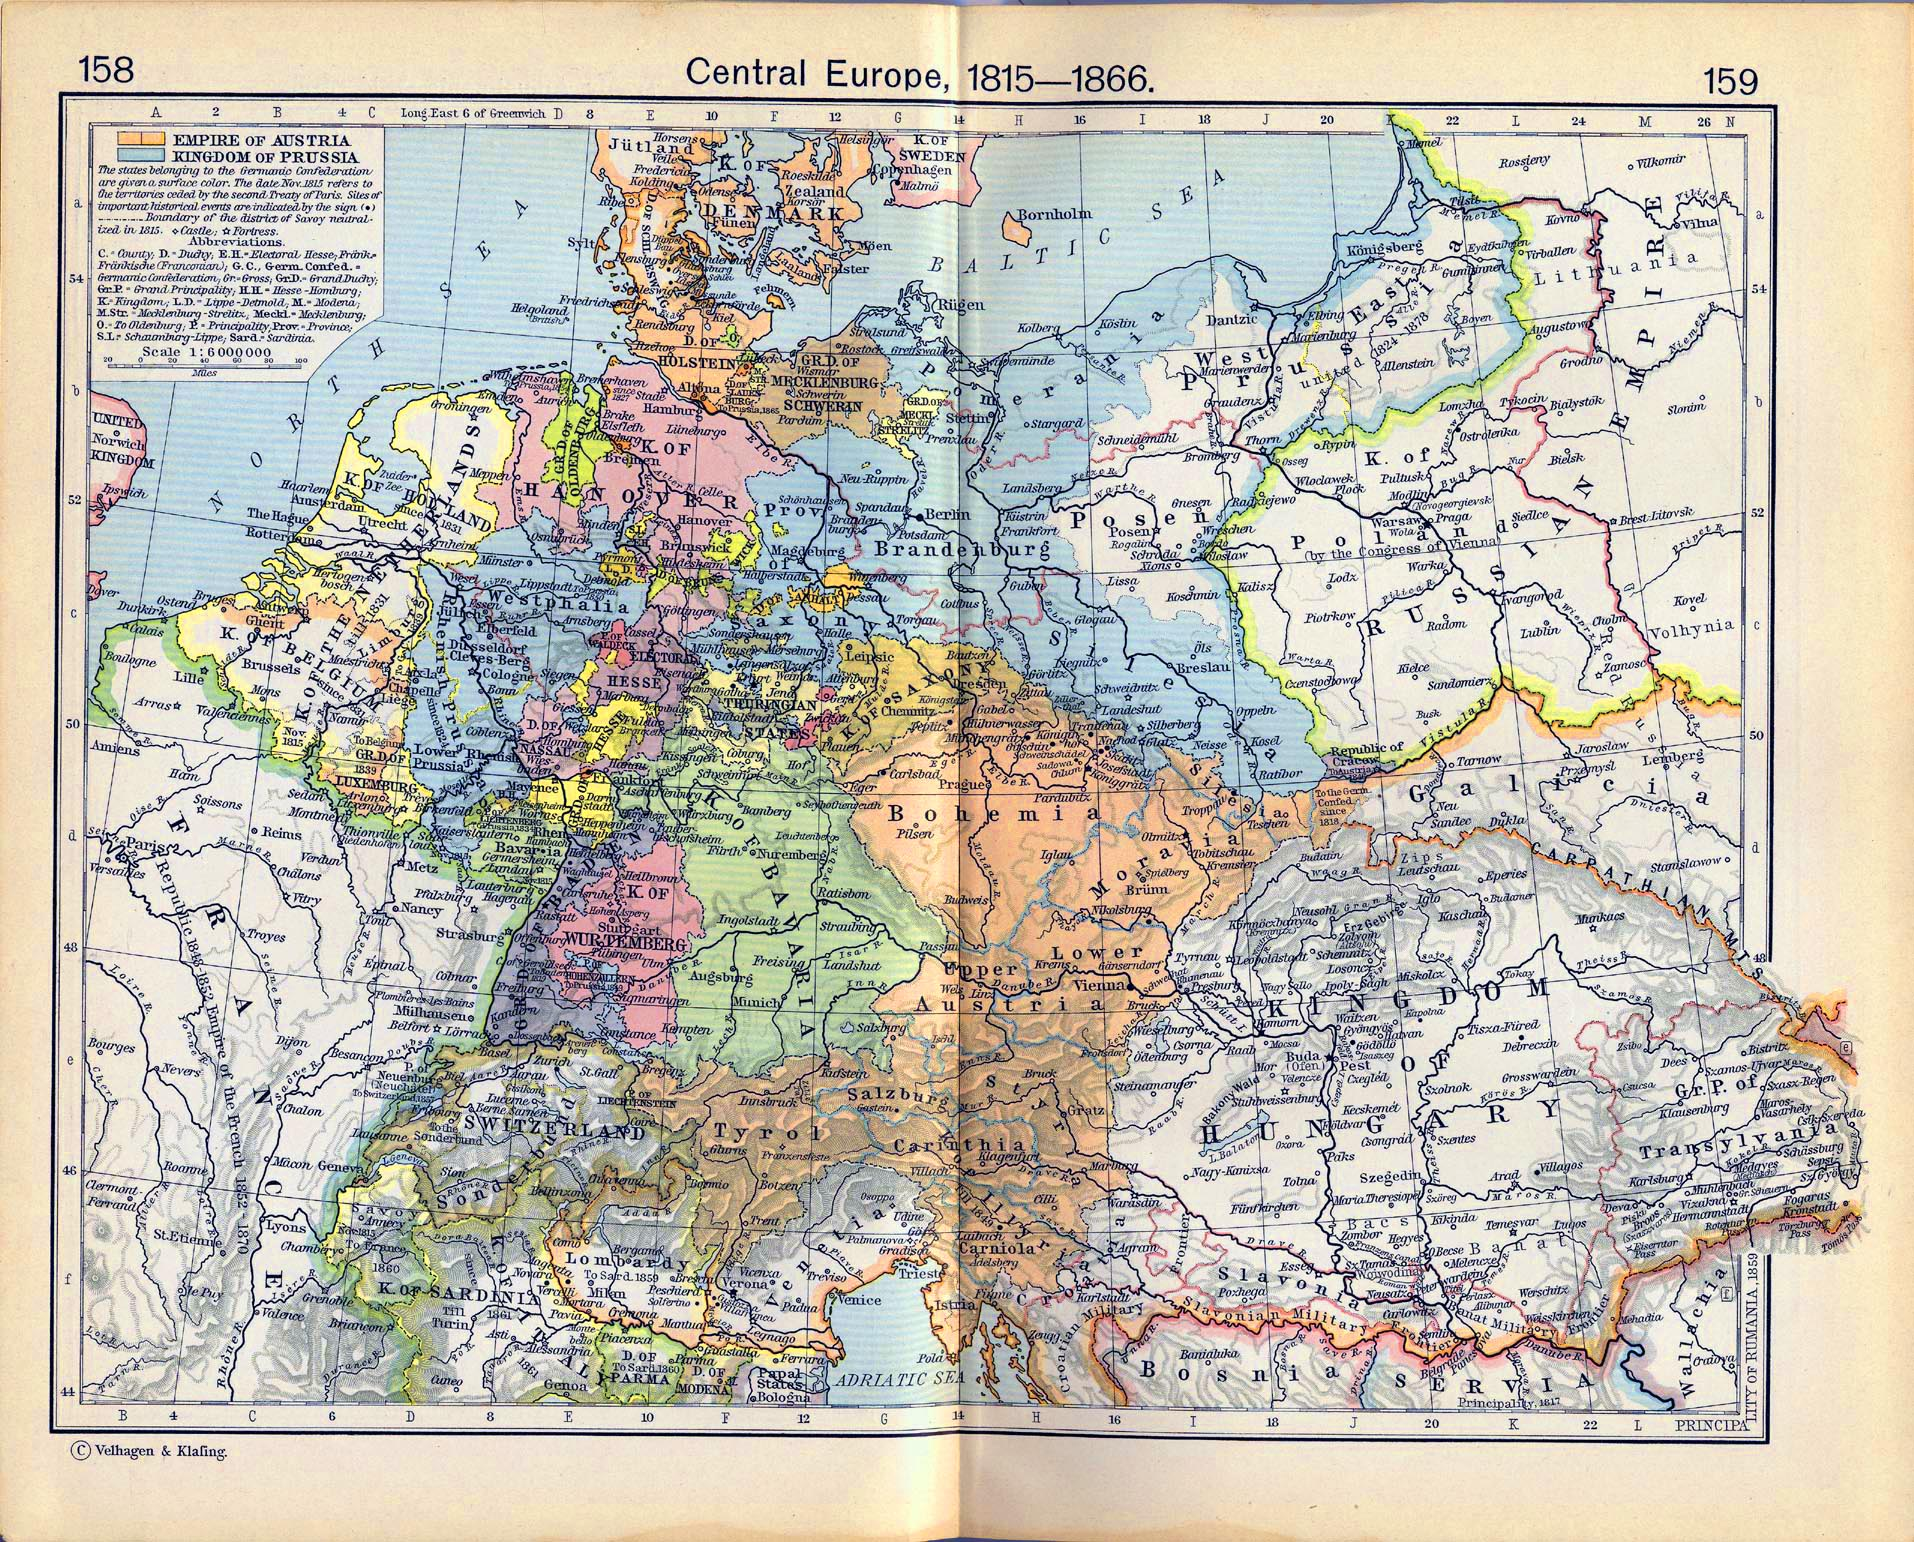 Map of Central Europe 1815-1866